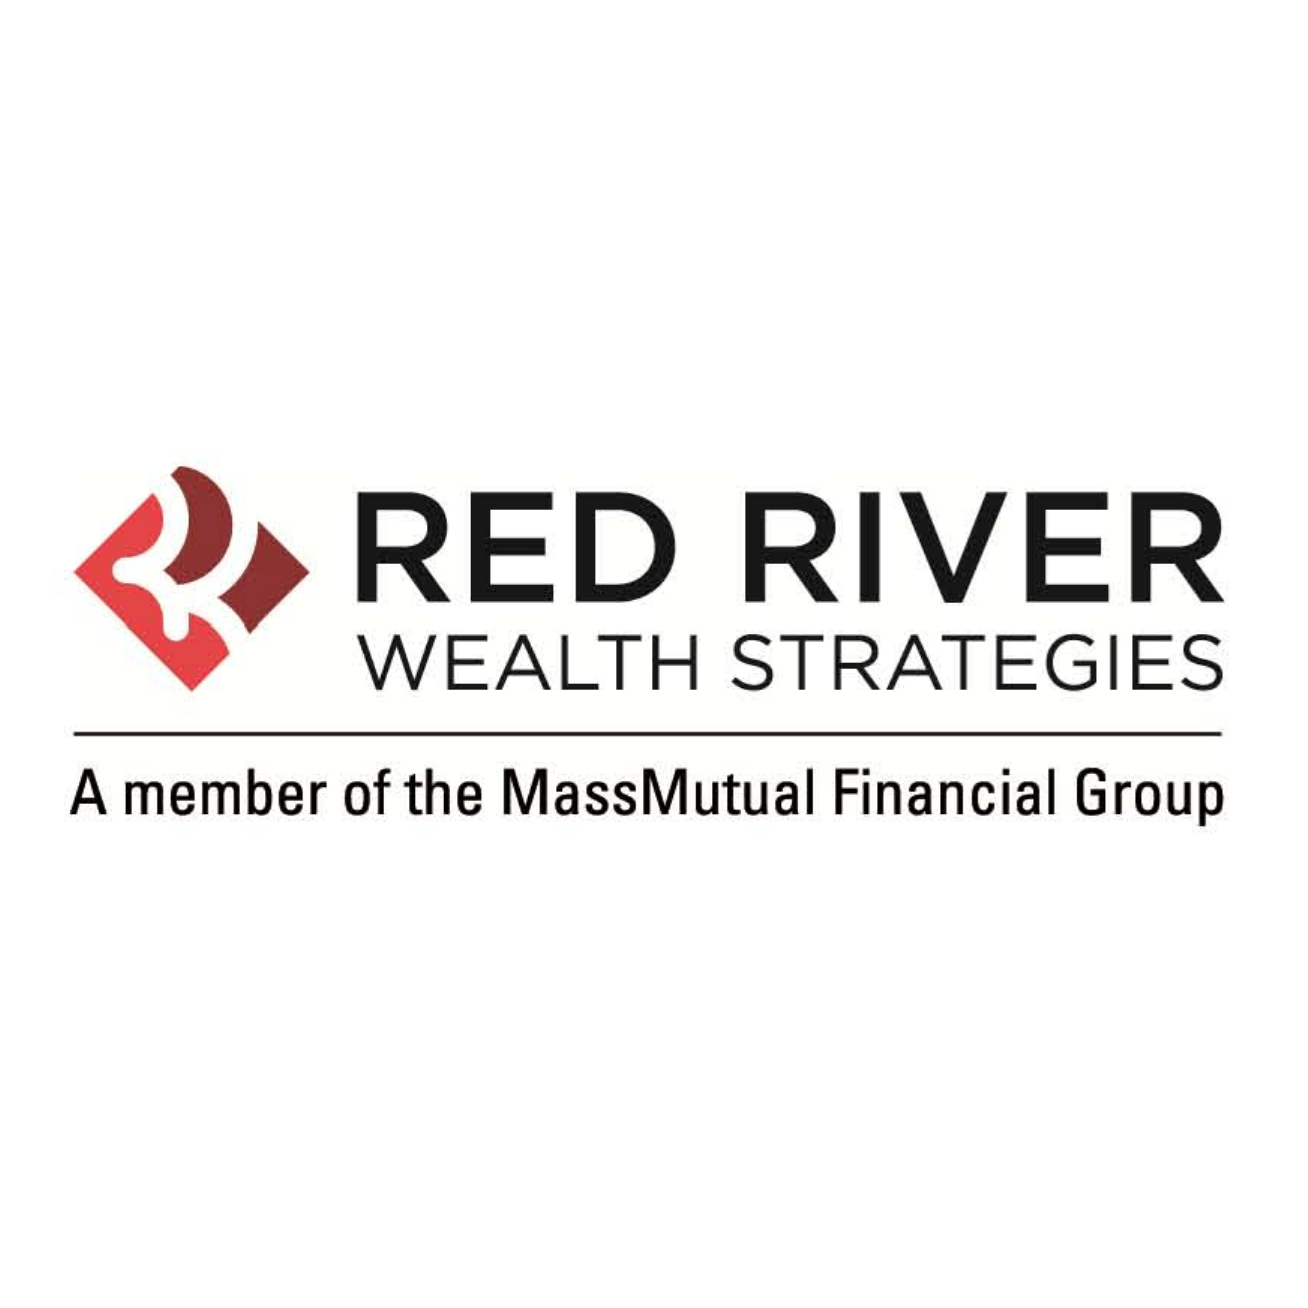 Red River Wealth Strategies